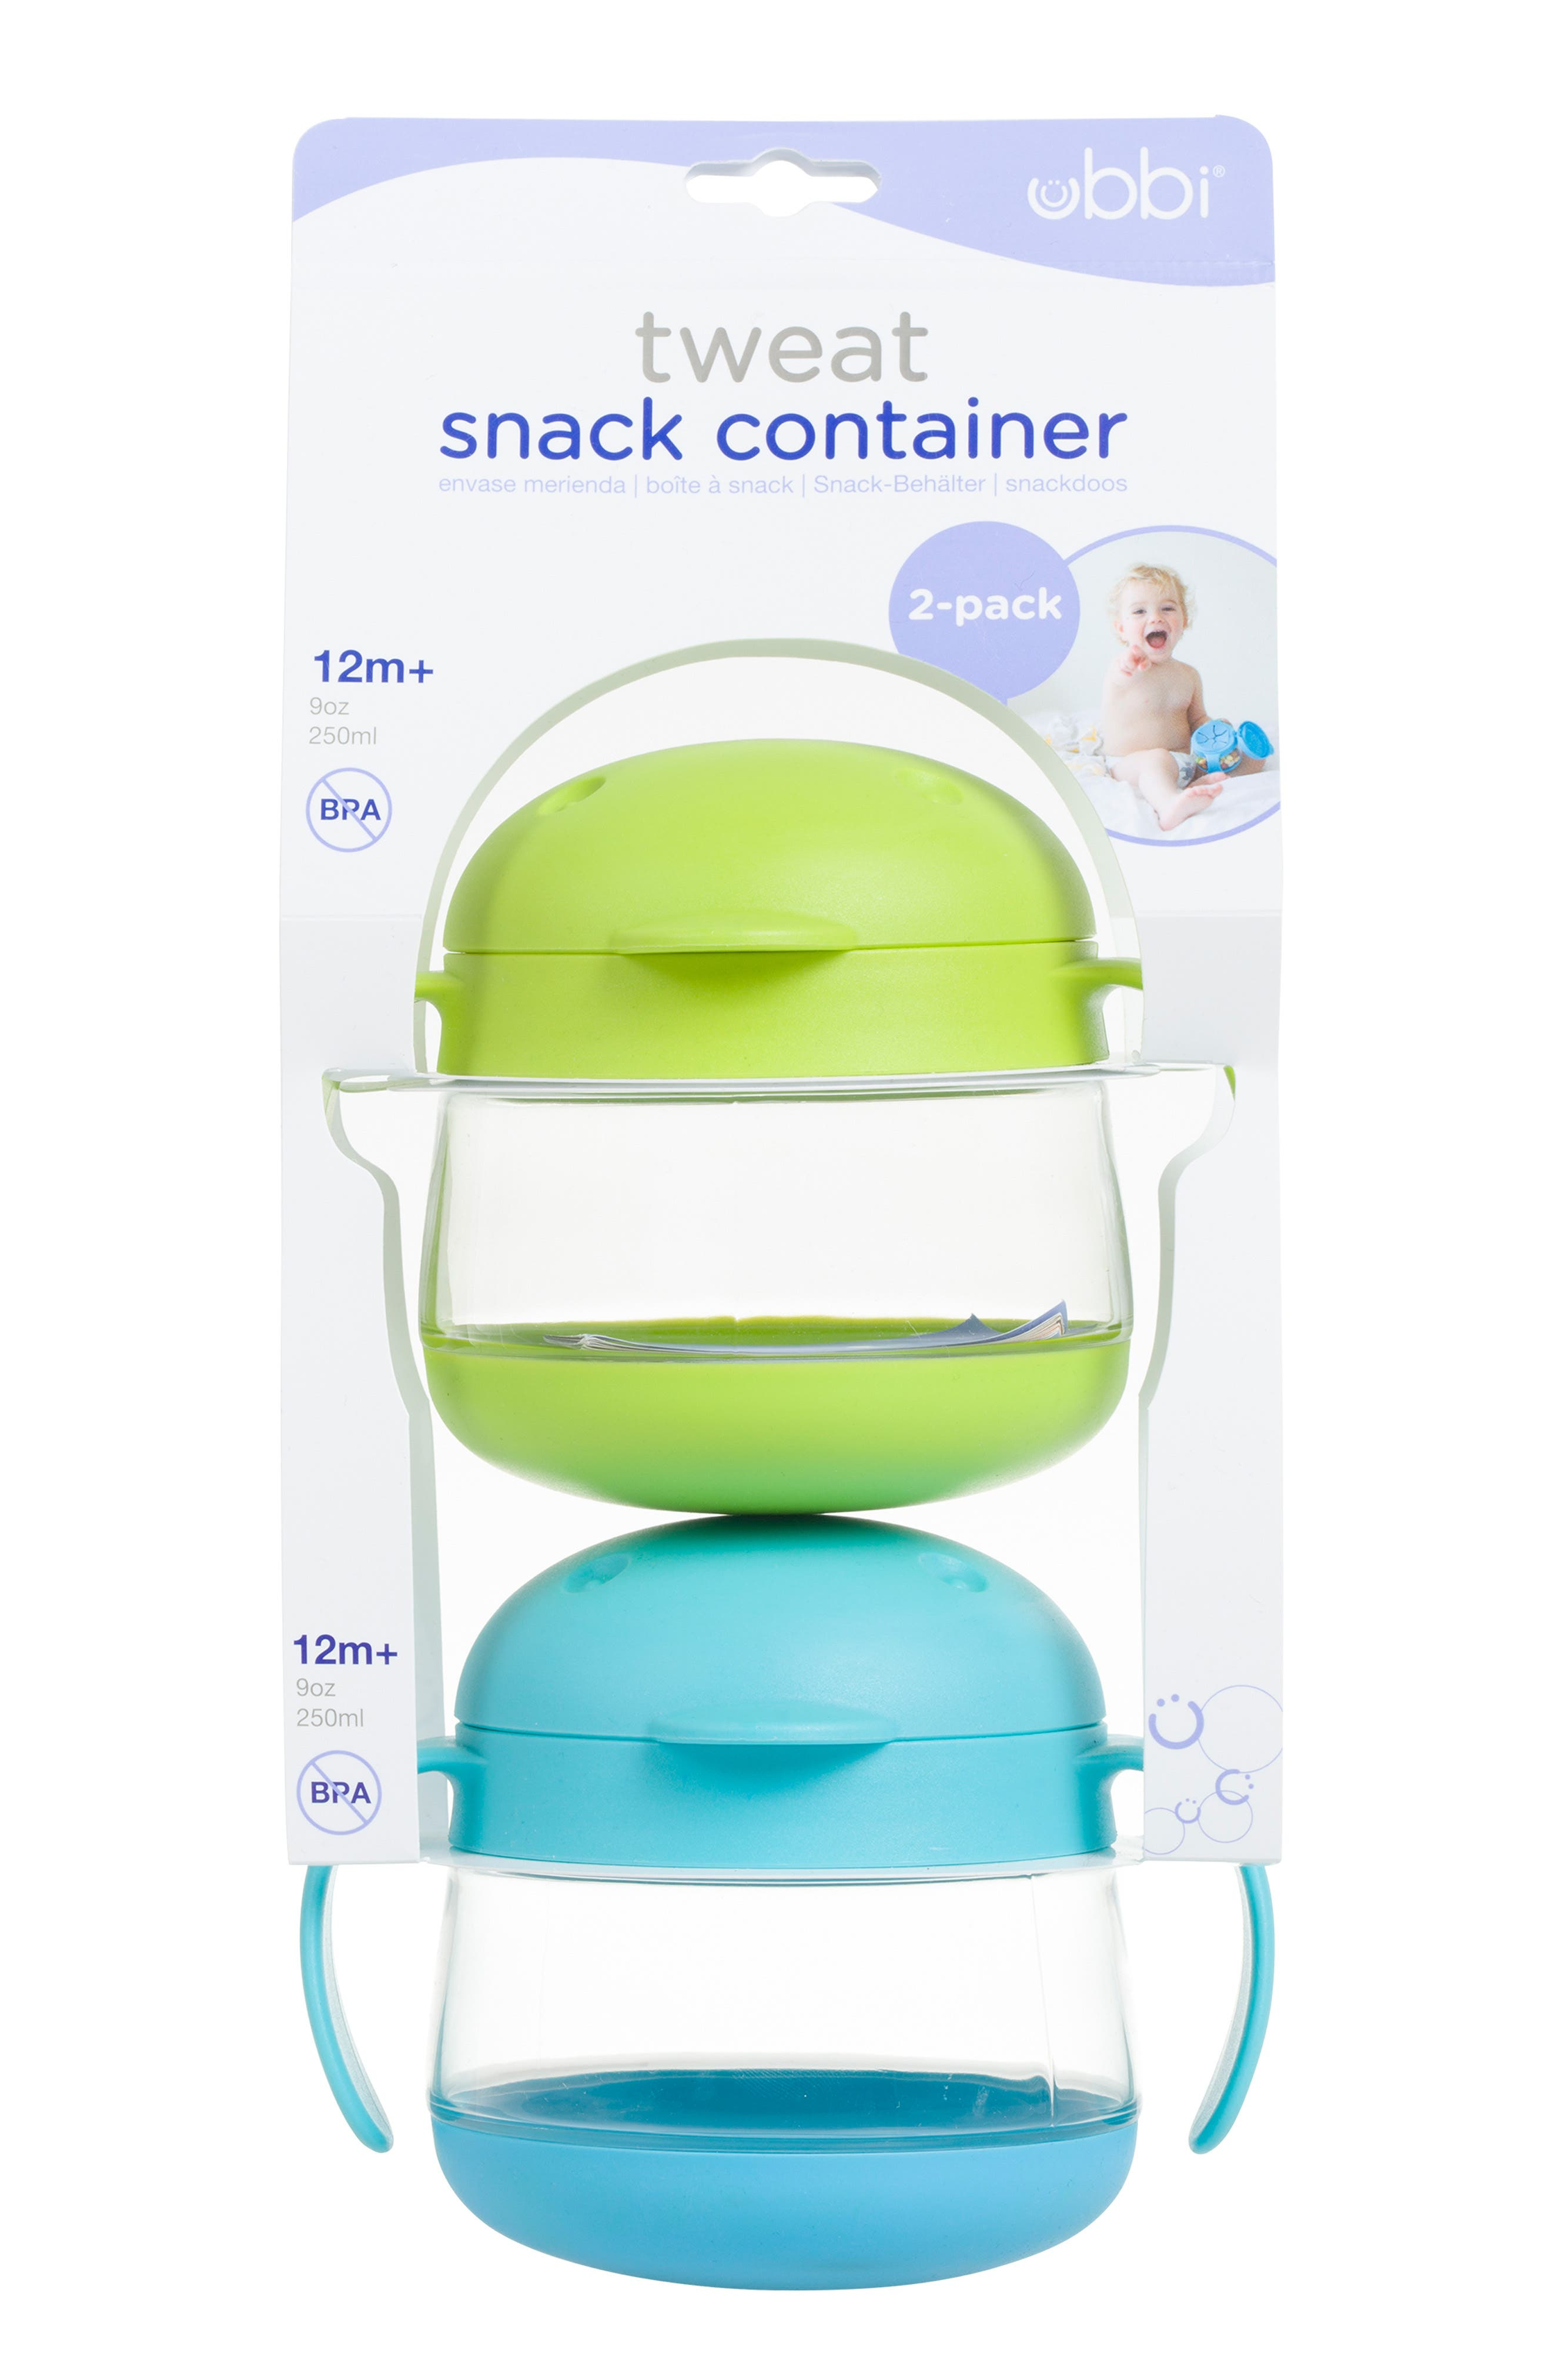 Tweat 2-Pack Snack Container,                             Main thumbnail 1, color,                             300